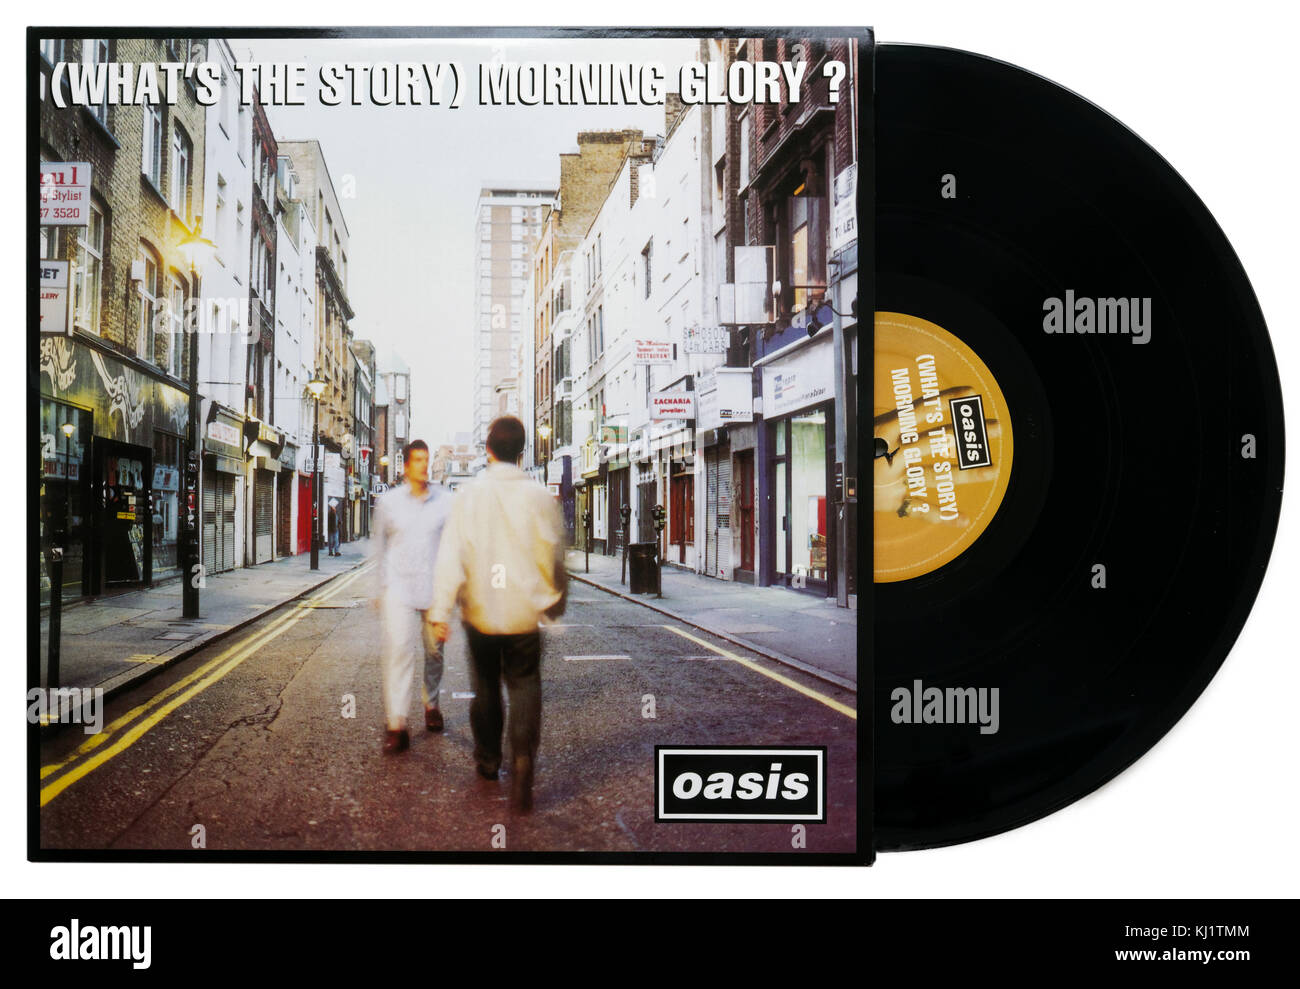 Whats' the Story Morning Glory album by Oasis - Stock Image